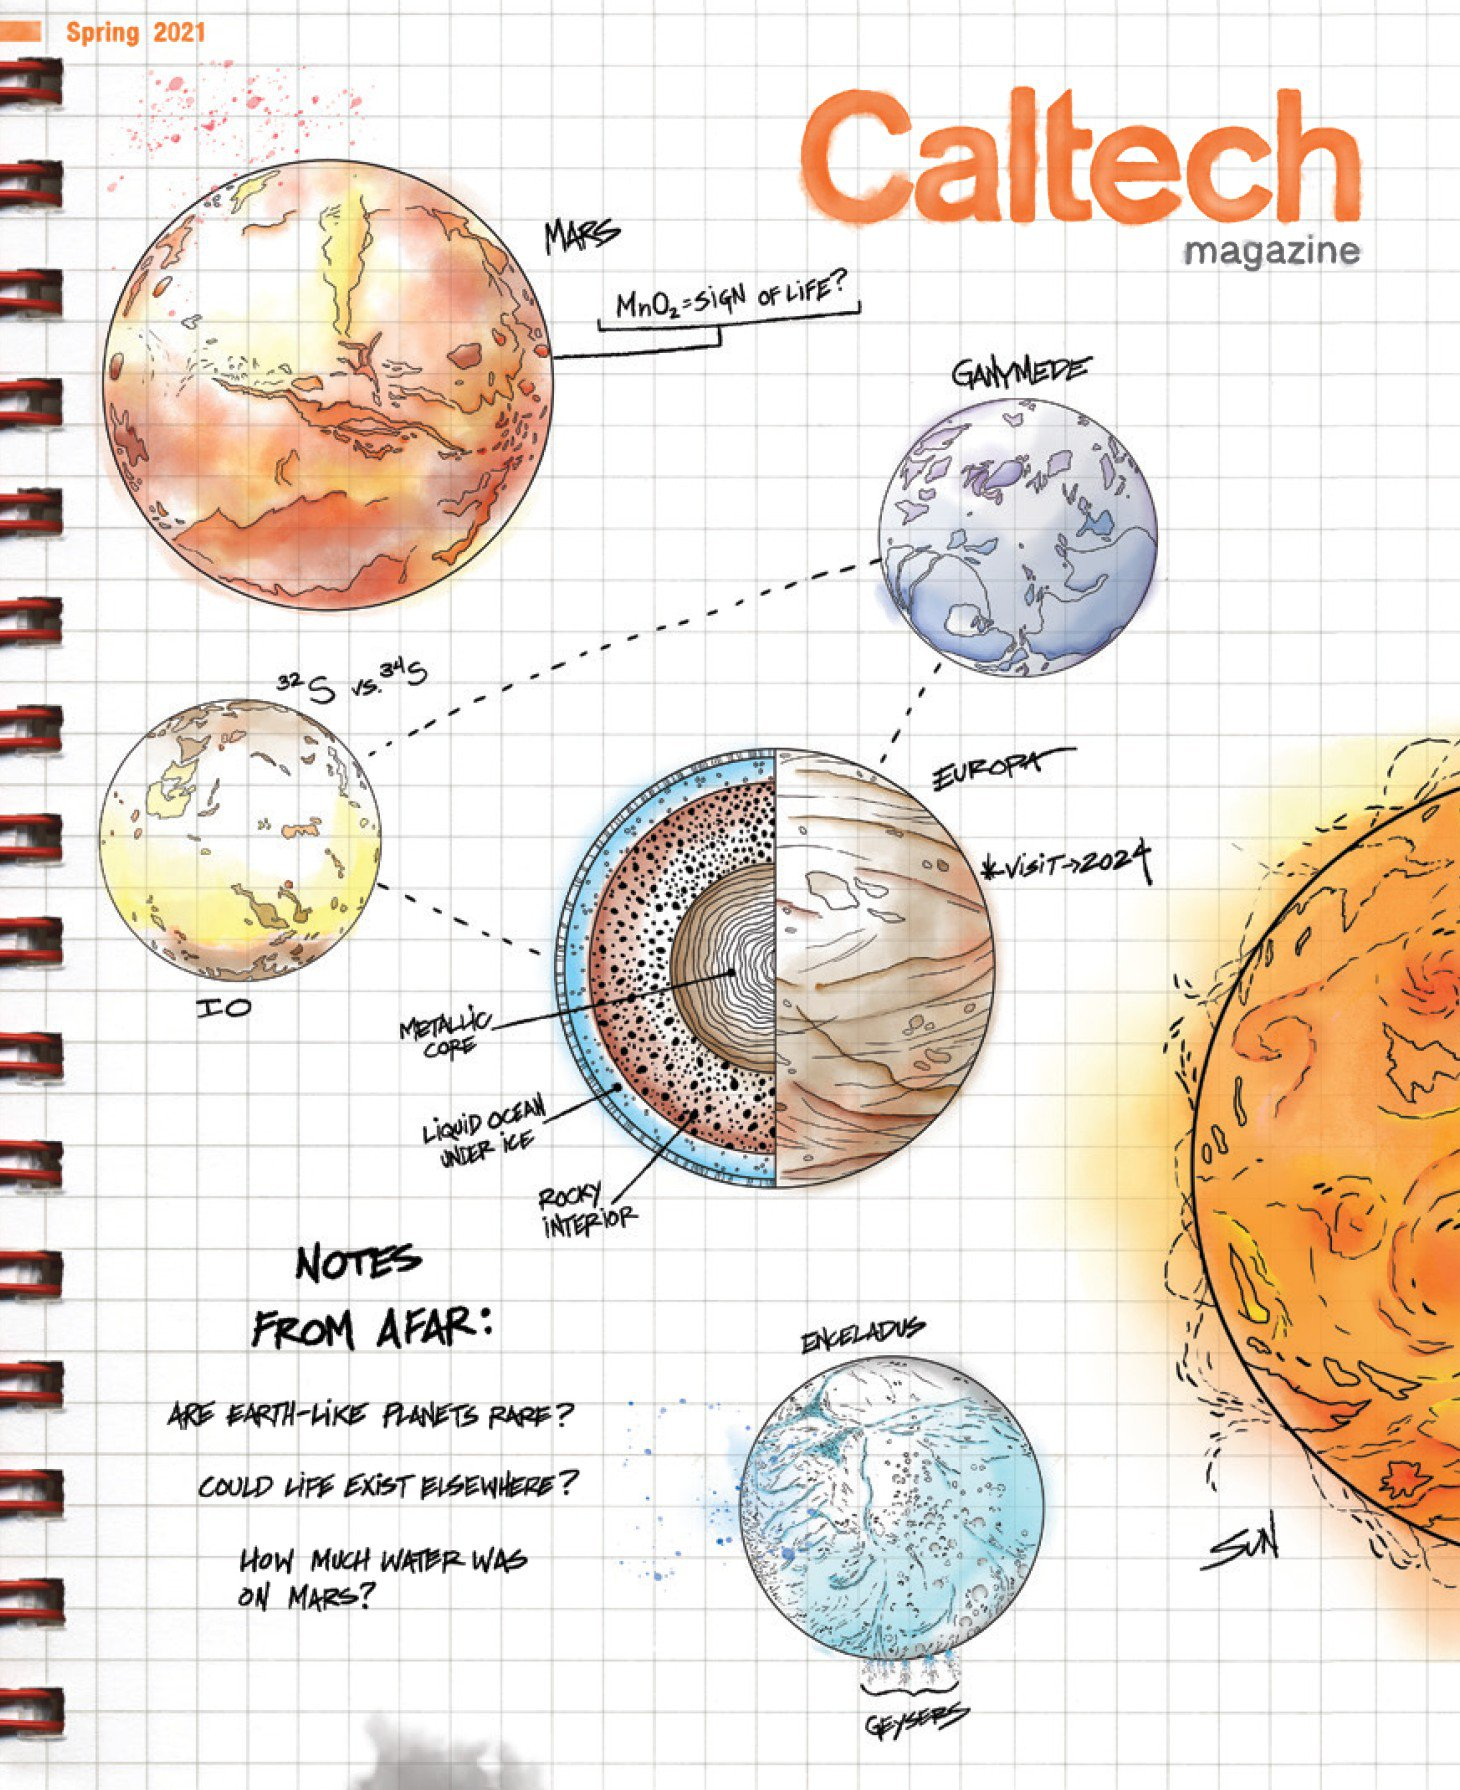 cover of the Spring 2021 issue of Caltech magazine